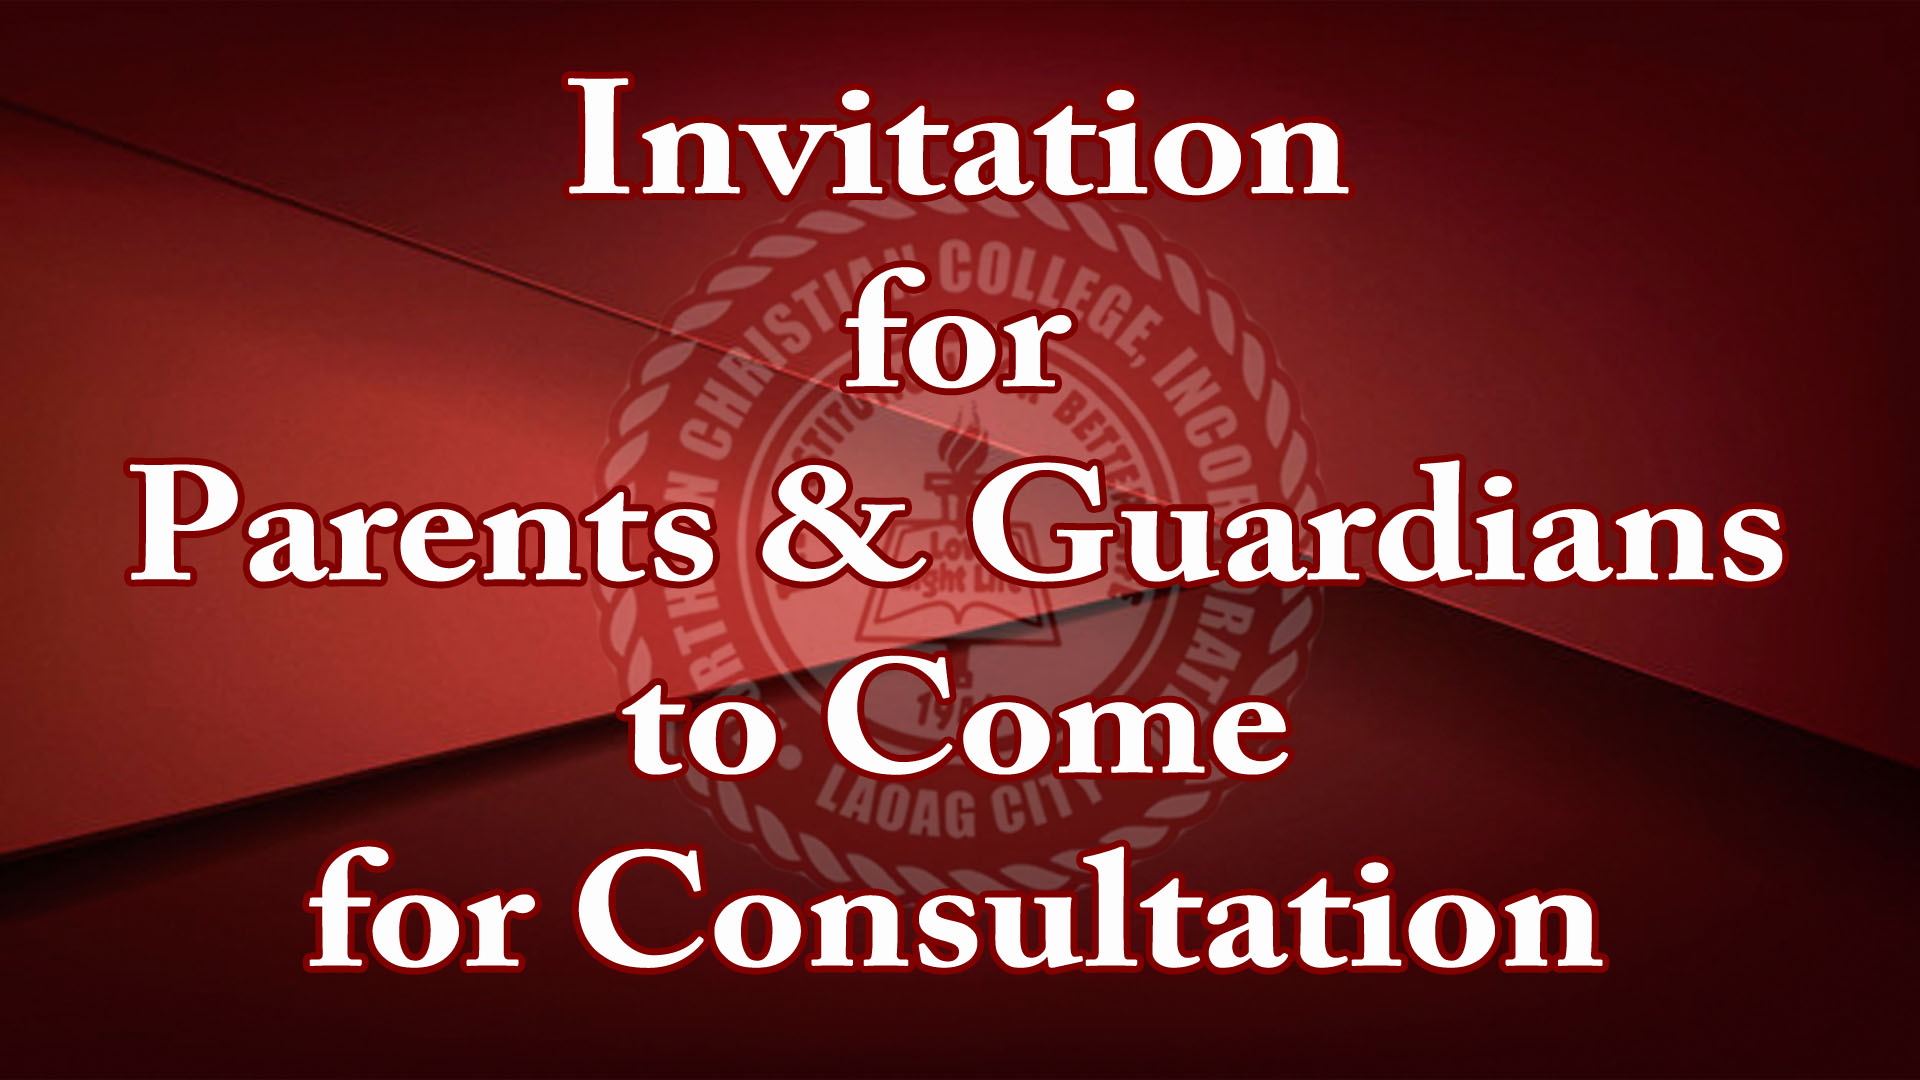 Invitation for Parents & Guardians to Come for Consultation